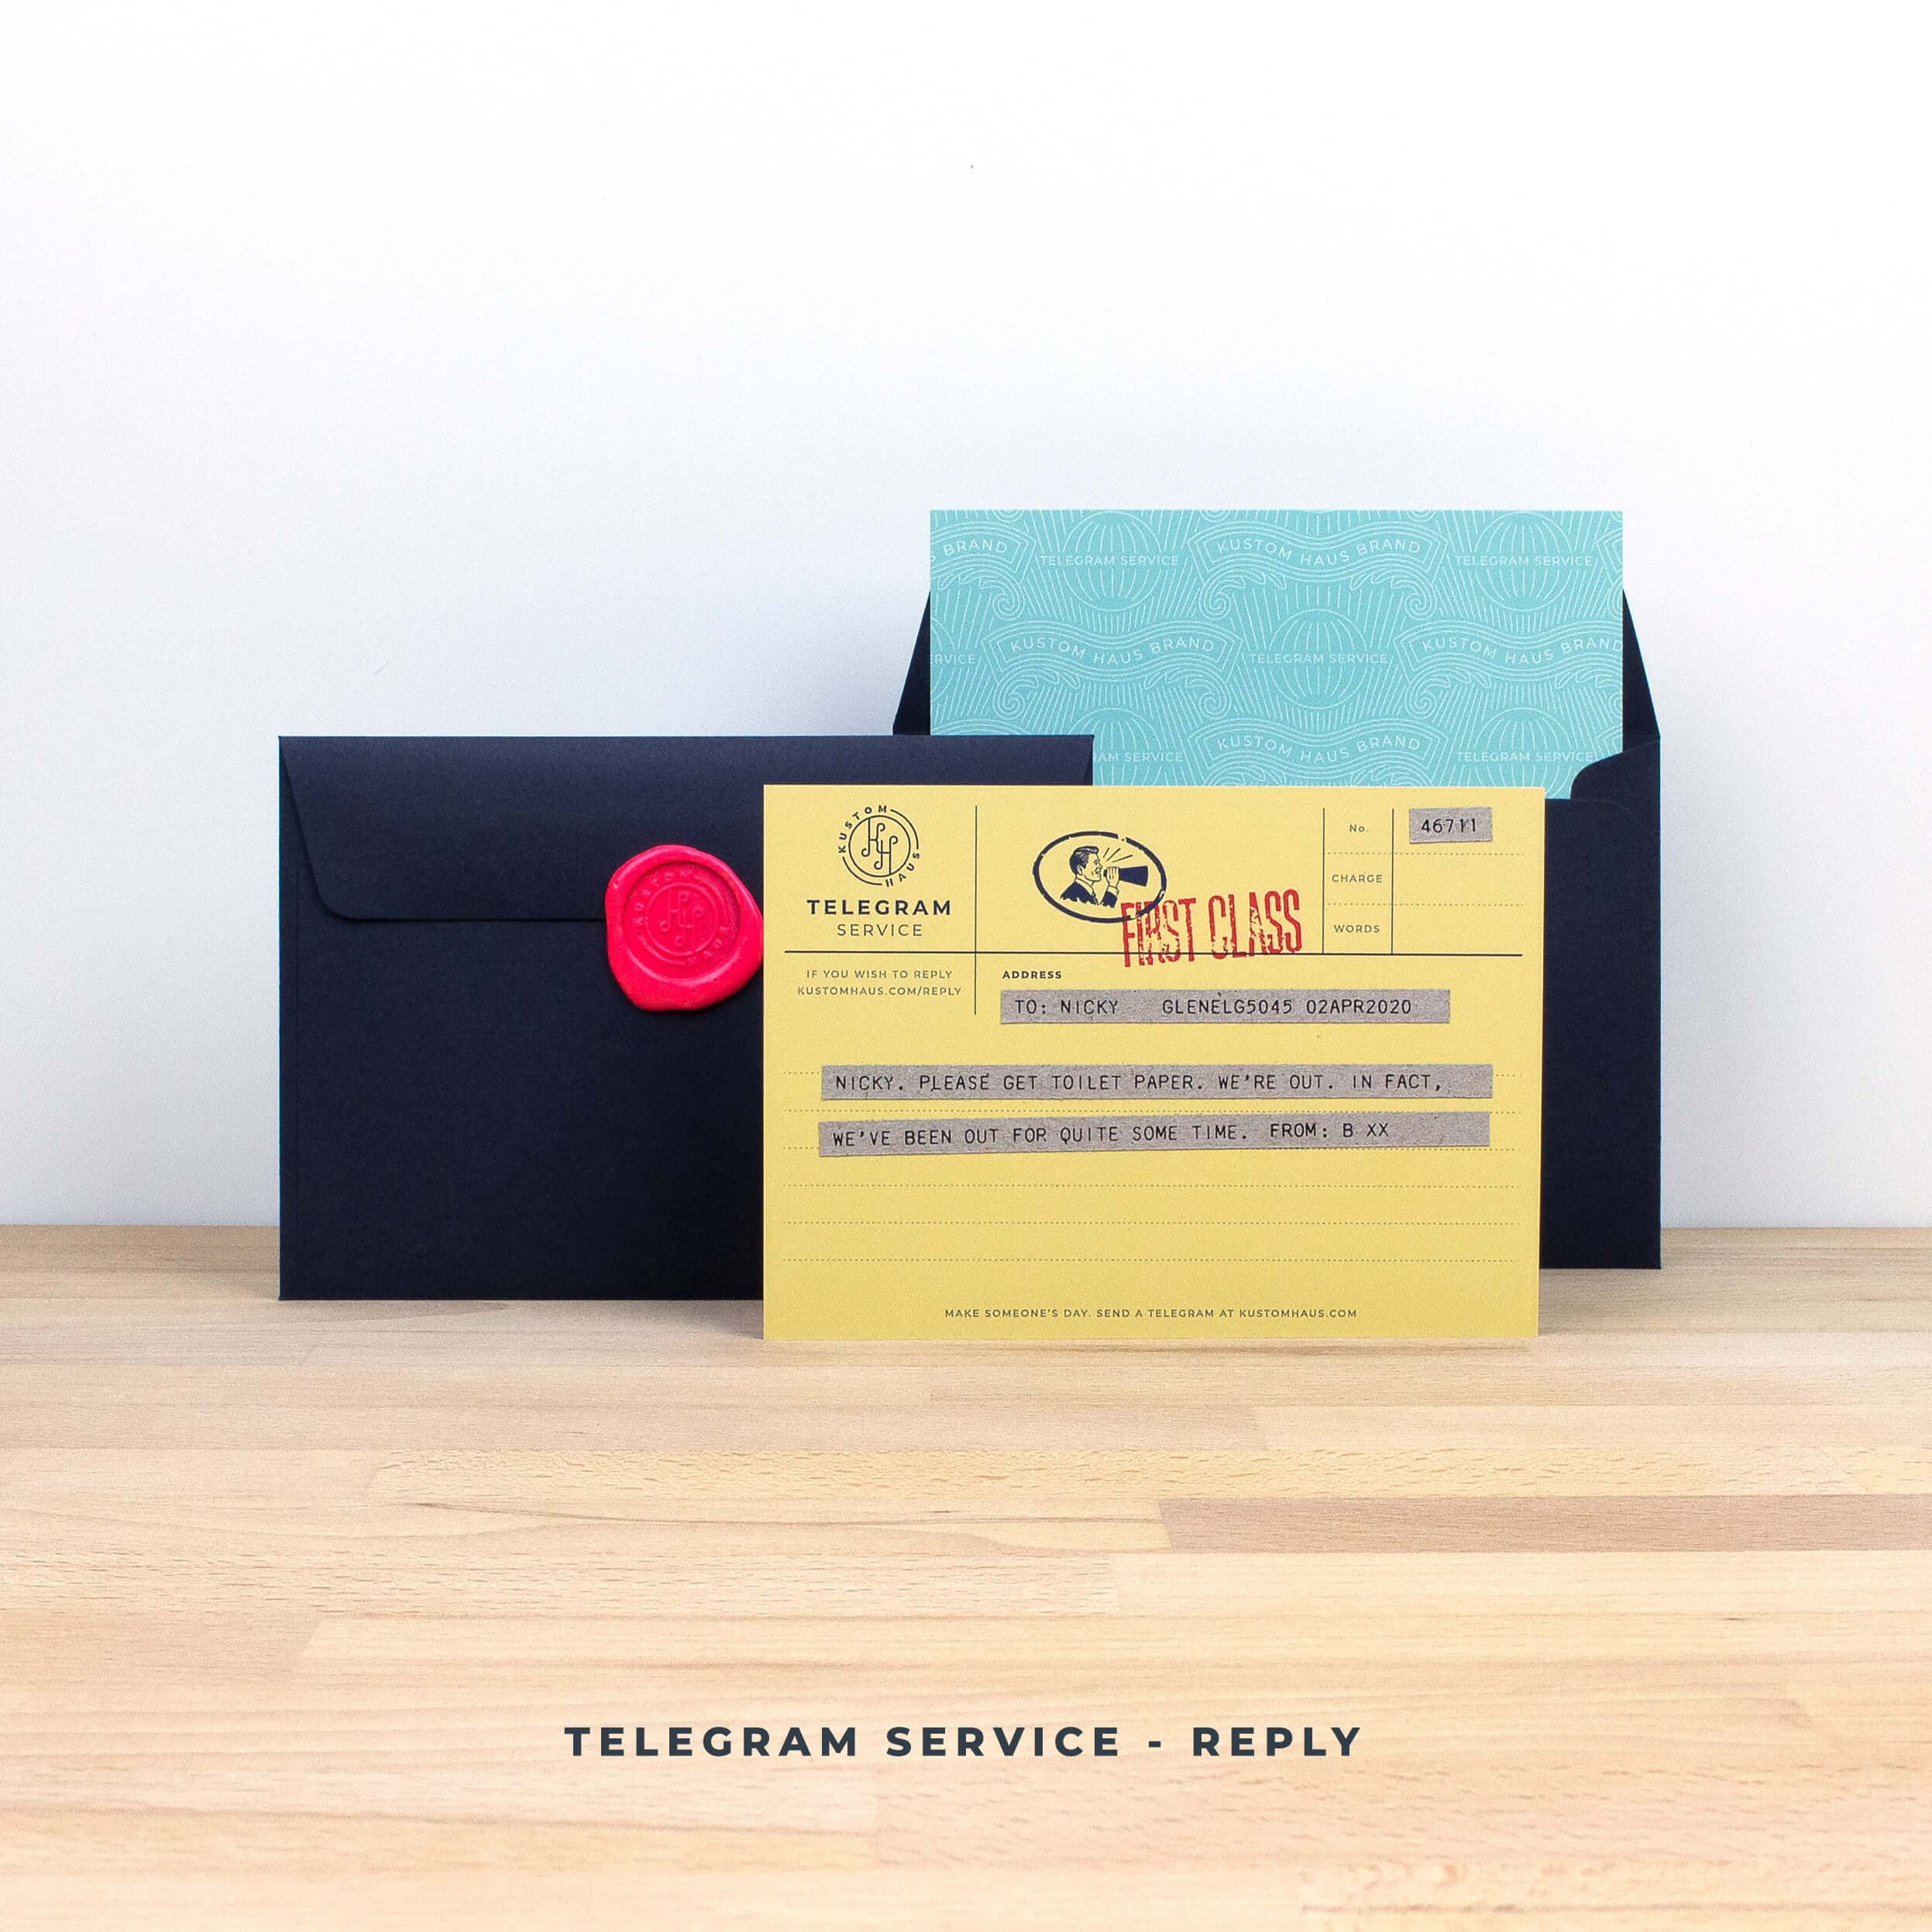 Kustom Haus Telegram Service - Send a Reply